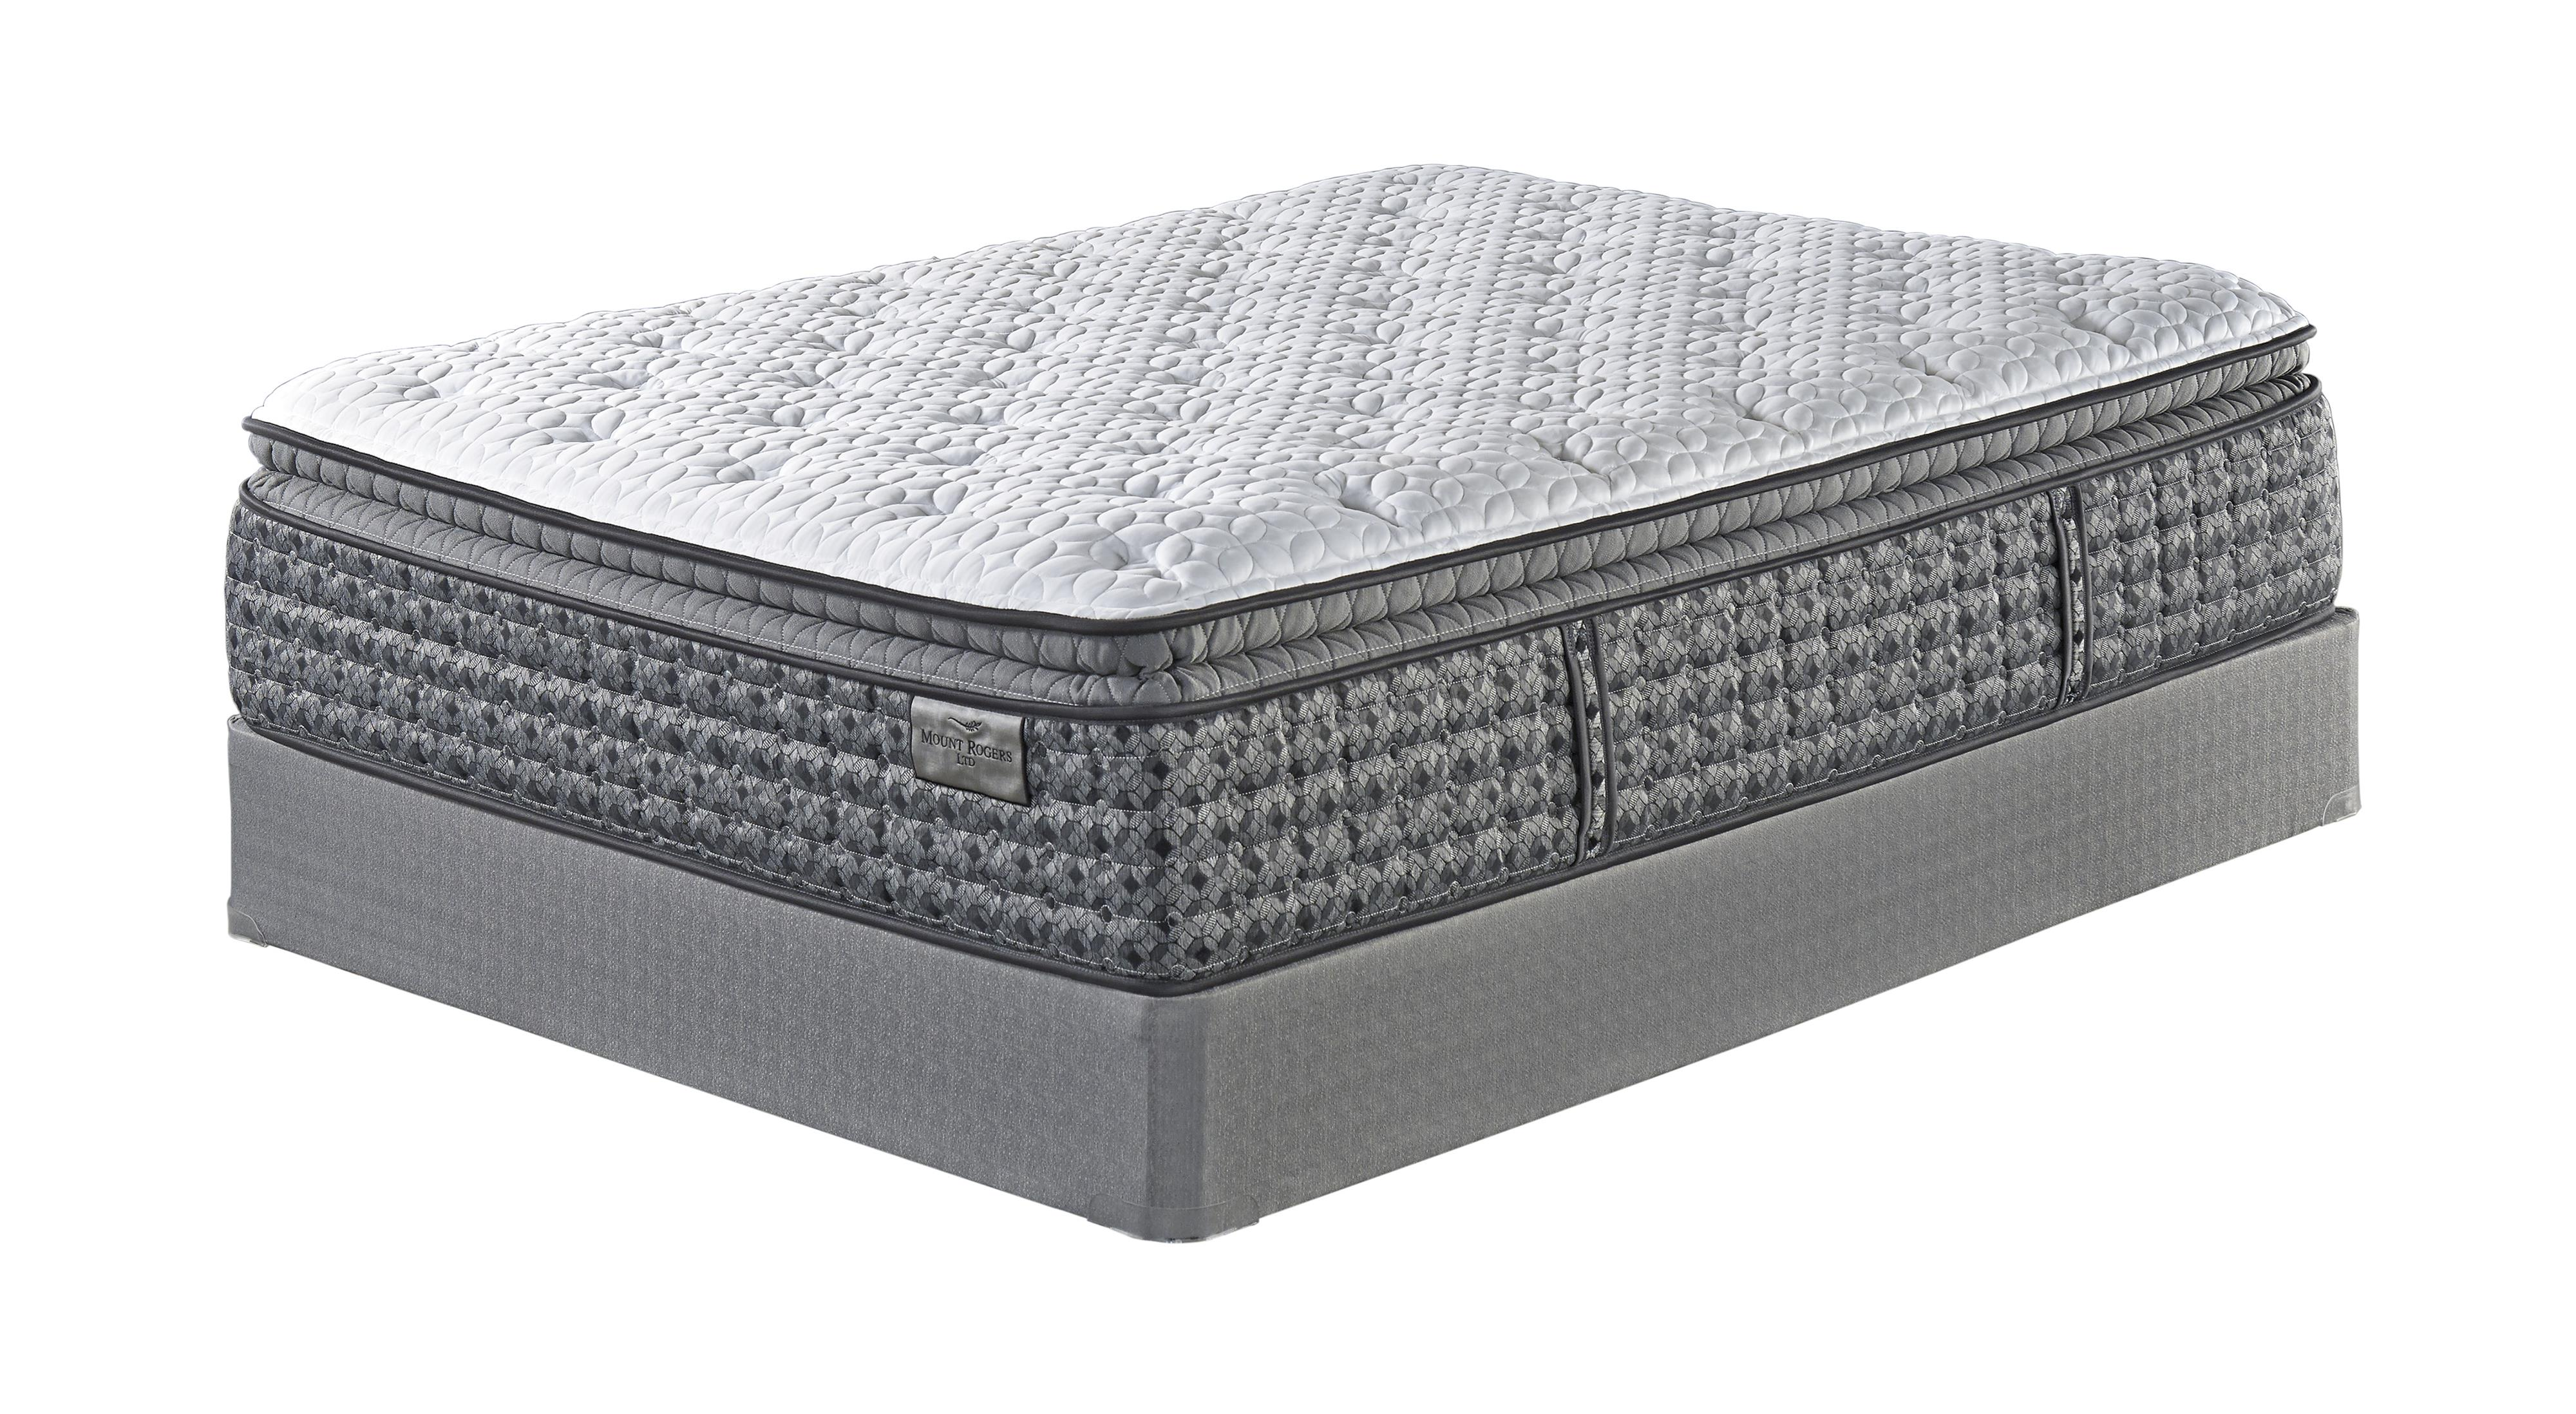 Sierra Sleep Mount Rogers Ltd Queen Pillow Top Mattress and Adj Base - Item Number: M90531+BetterAdj-Q